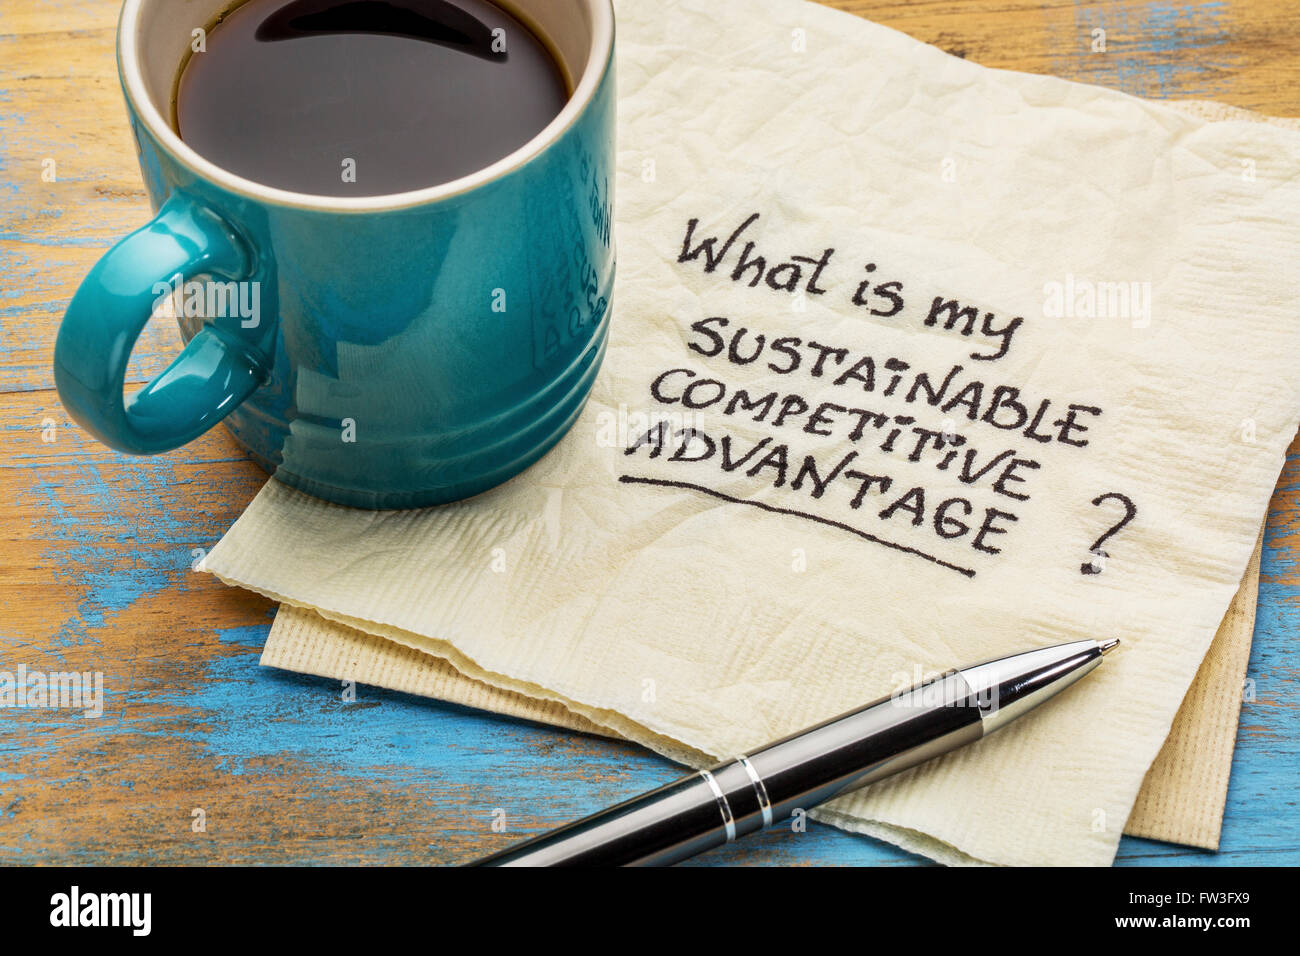 What is my sustainable competitive advantage question - handwriting on a napkin with a cup of coffee - Stock Image